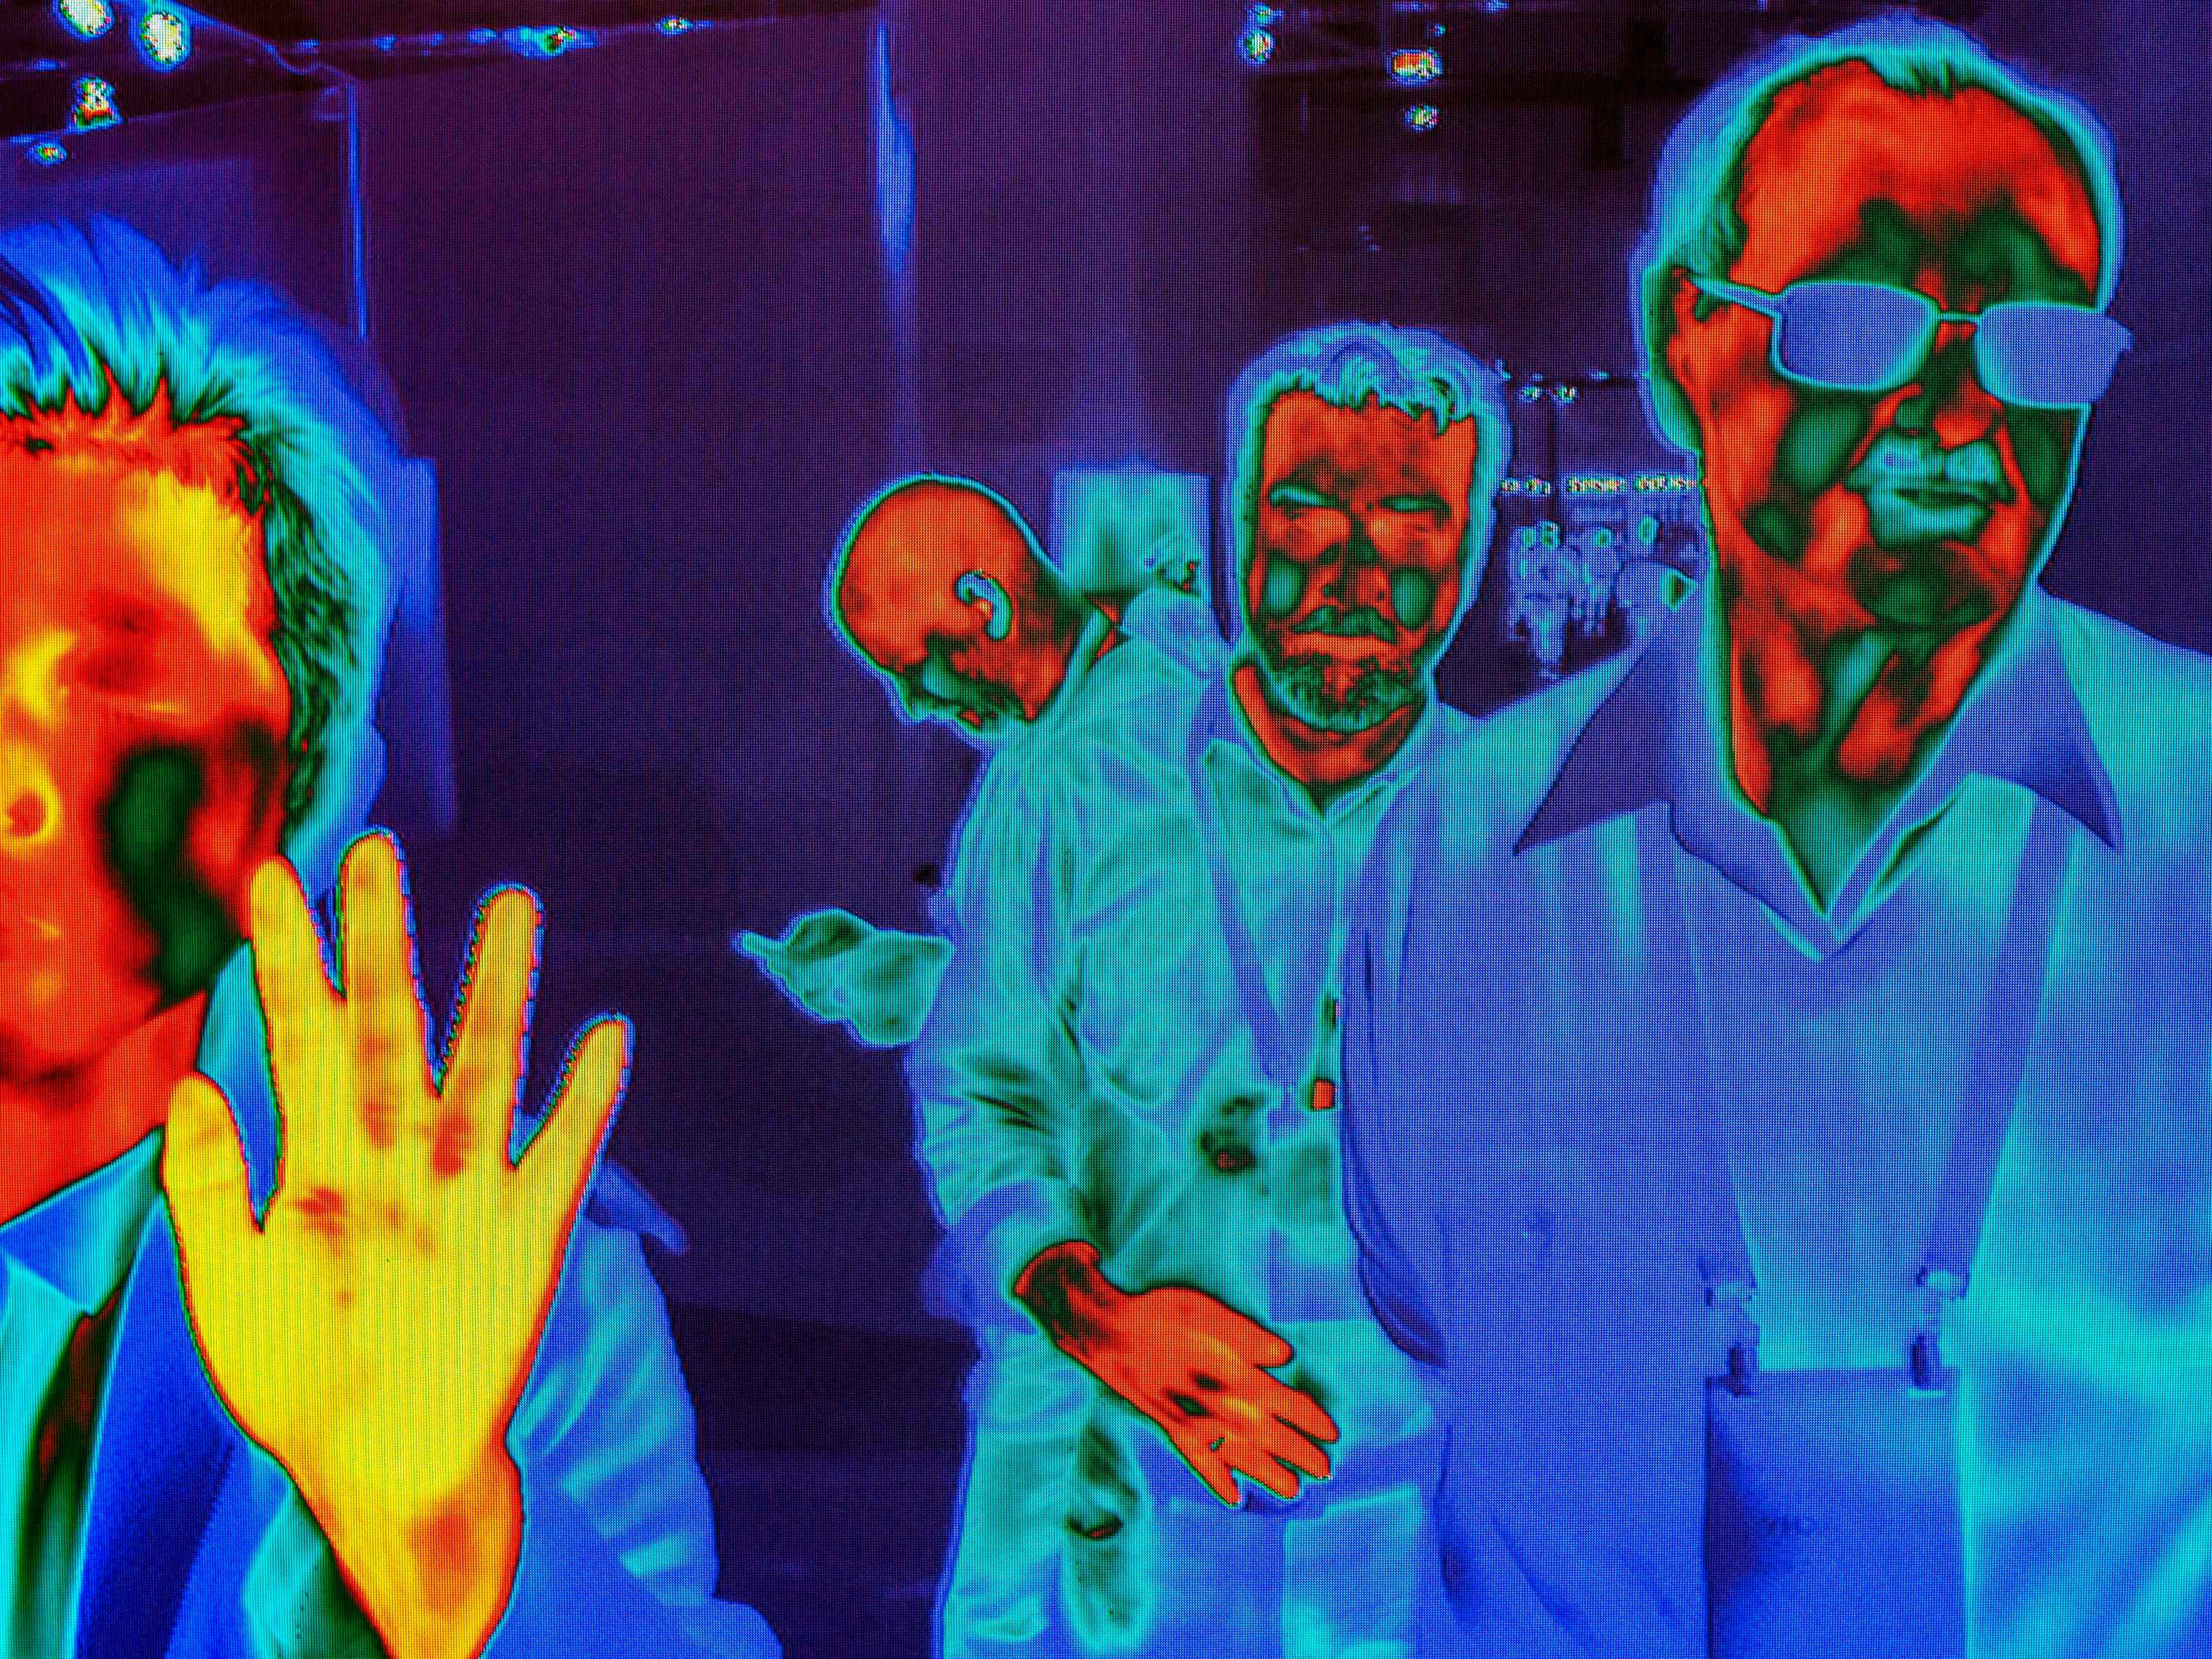 People are captured by FLIR (Forward-Looking Infrared) HD Thermal Imaging Cameras as they walk near the FLIR exhibit.